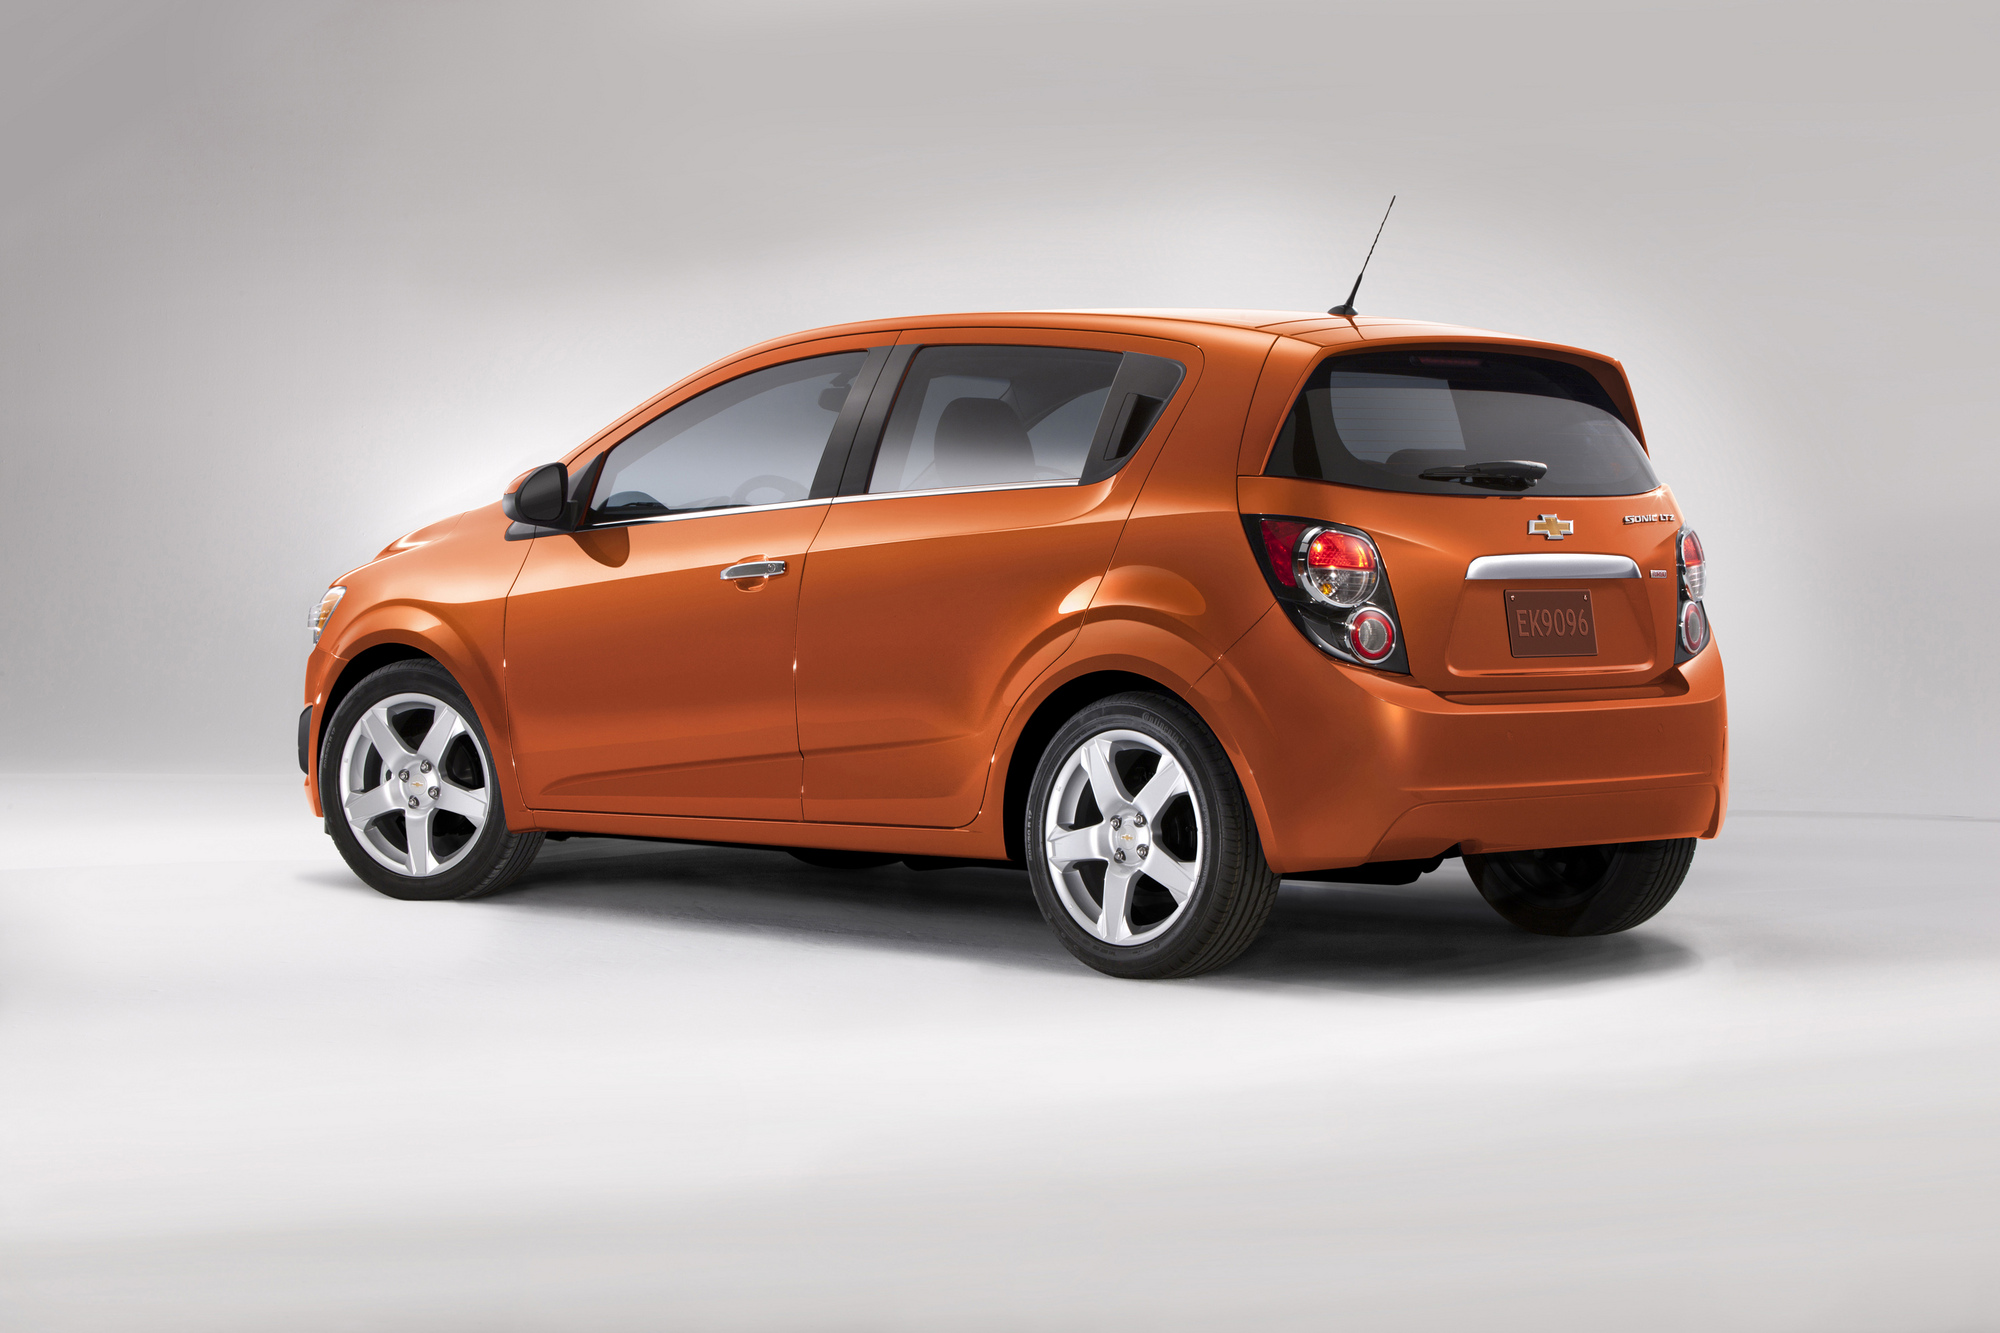 Chevrolet Sonic 1.4 LT Automatic